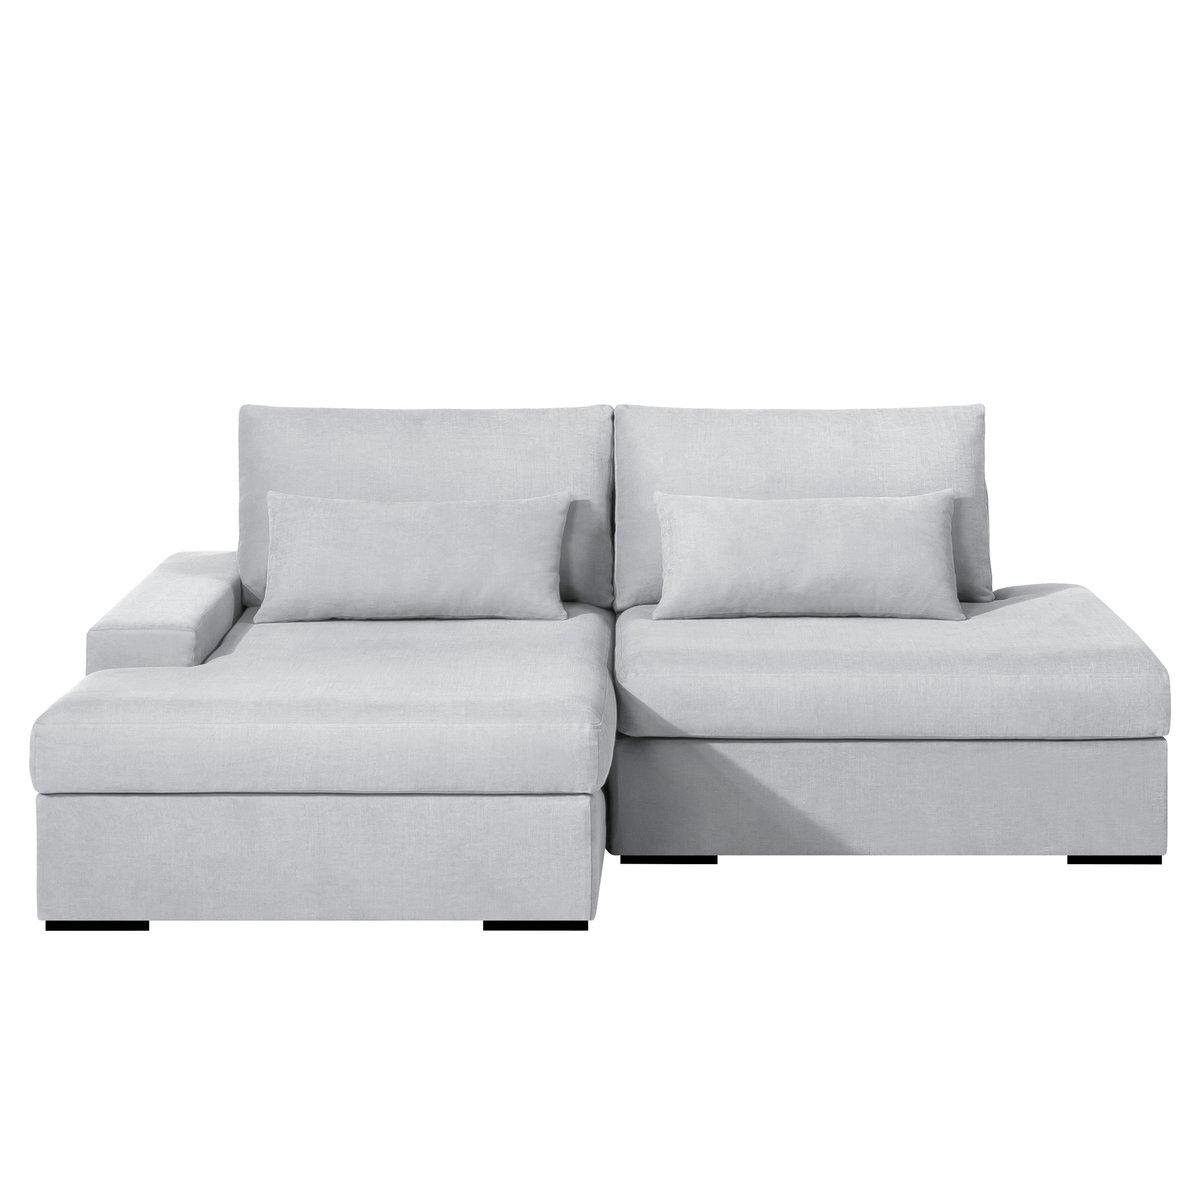 Etourdissant Canape D Angle 2 Places Couch Sectional Couch Cool Designs